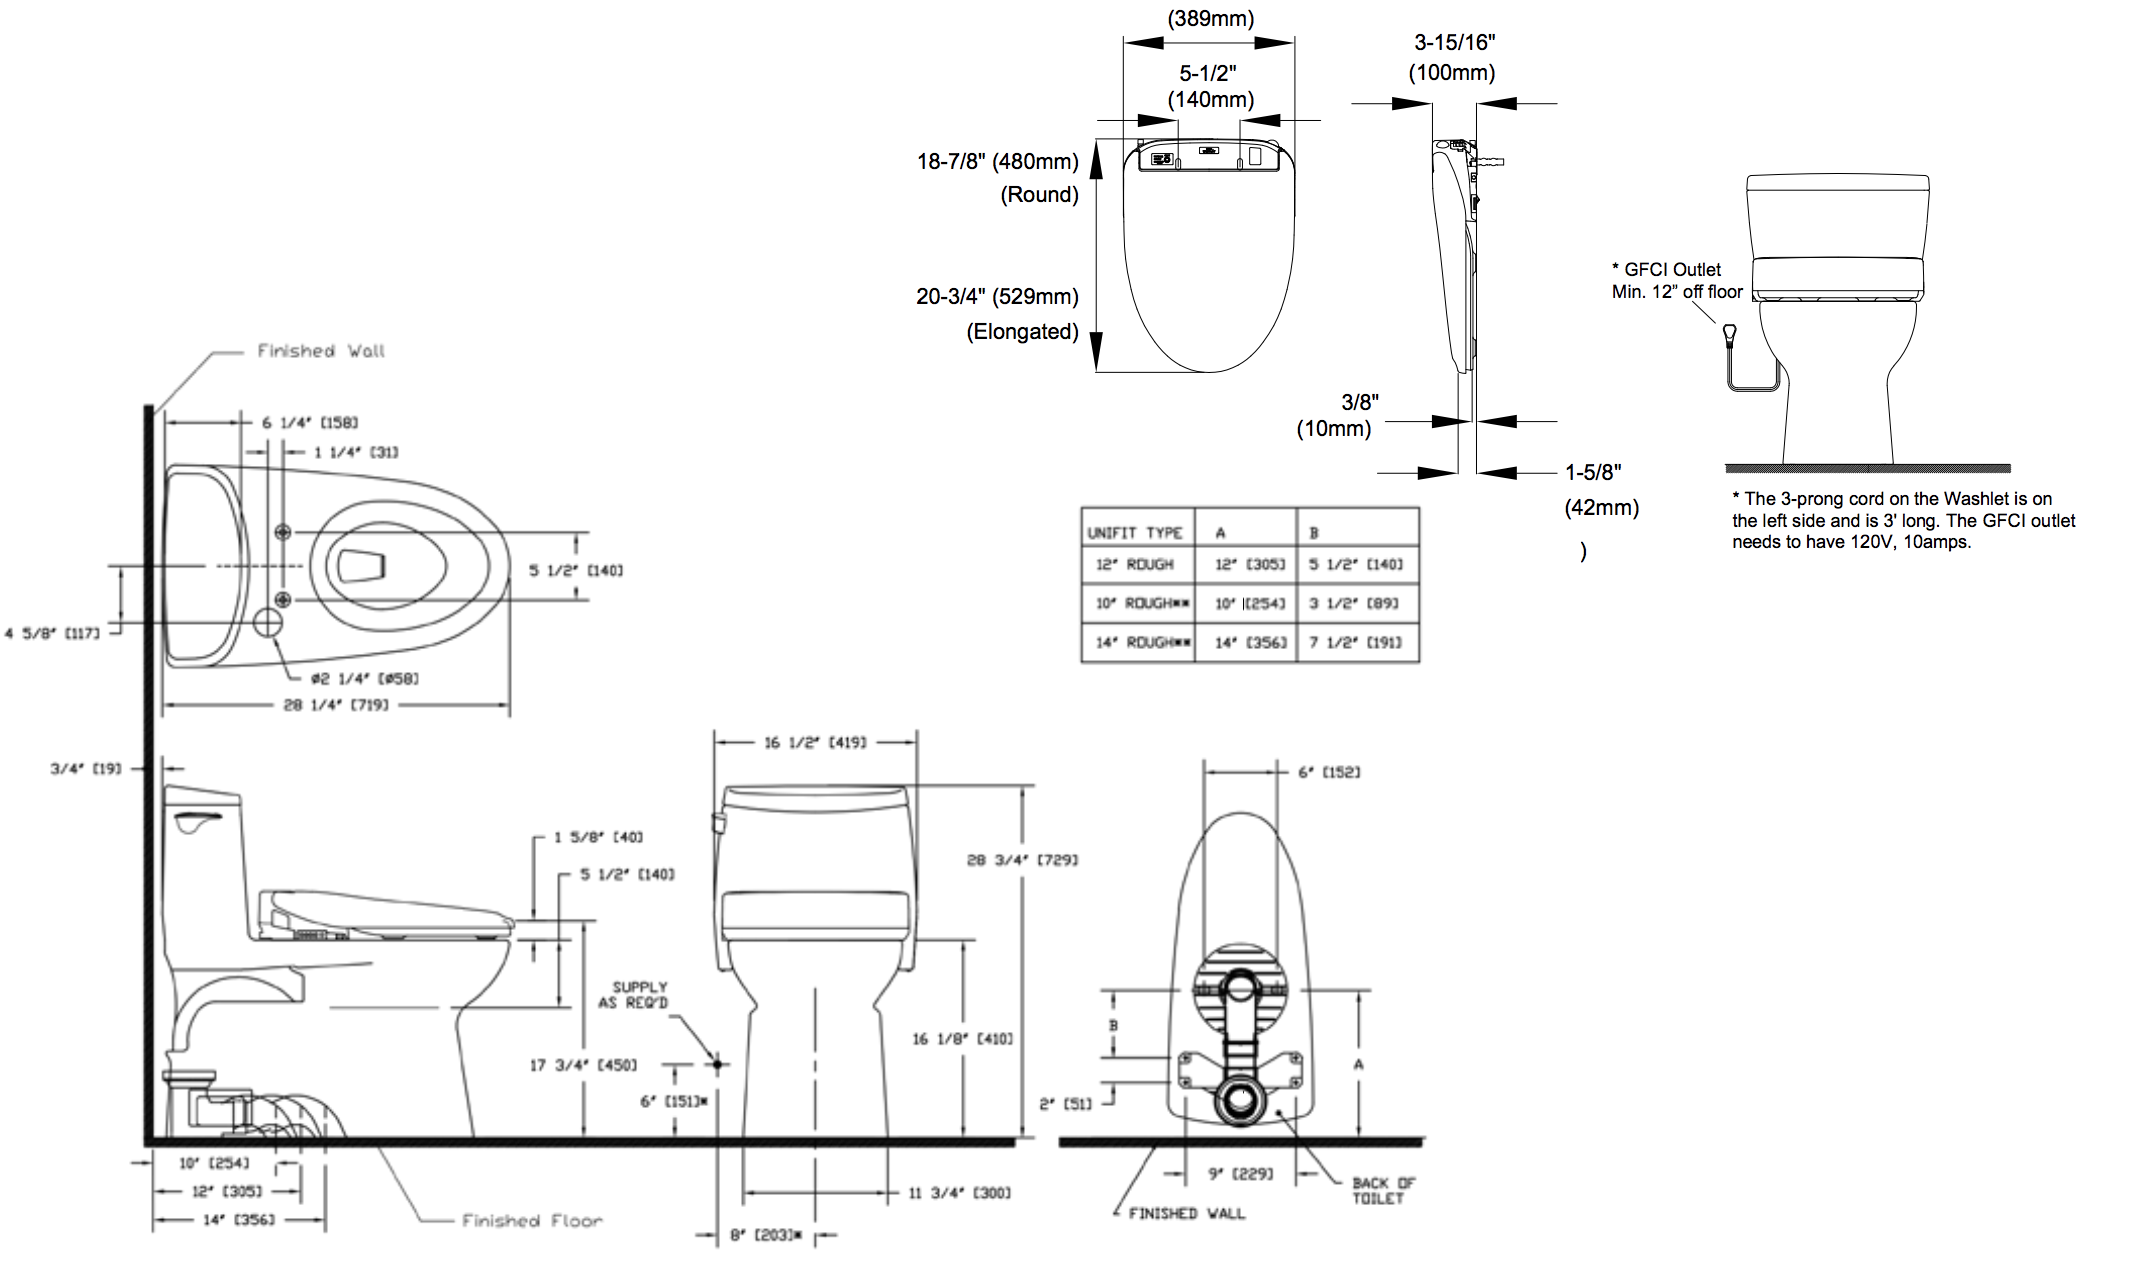 carlyle-ii-1g-washlet-s350e-one-piece-toilet-1.0-gpf-diagram.png